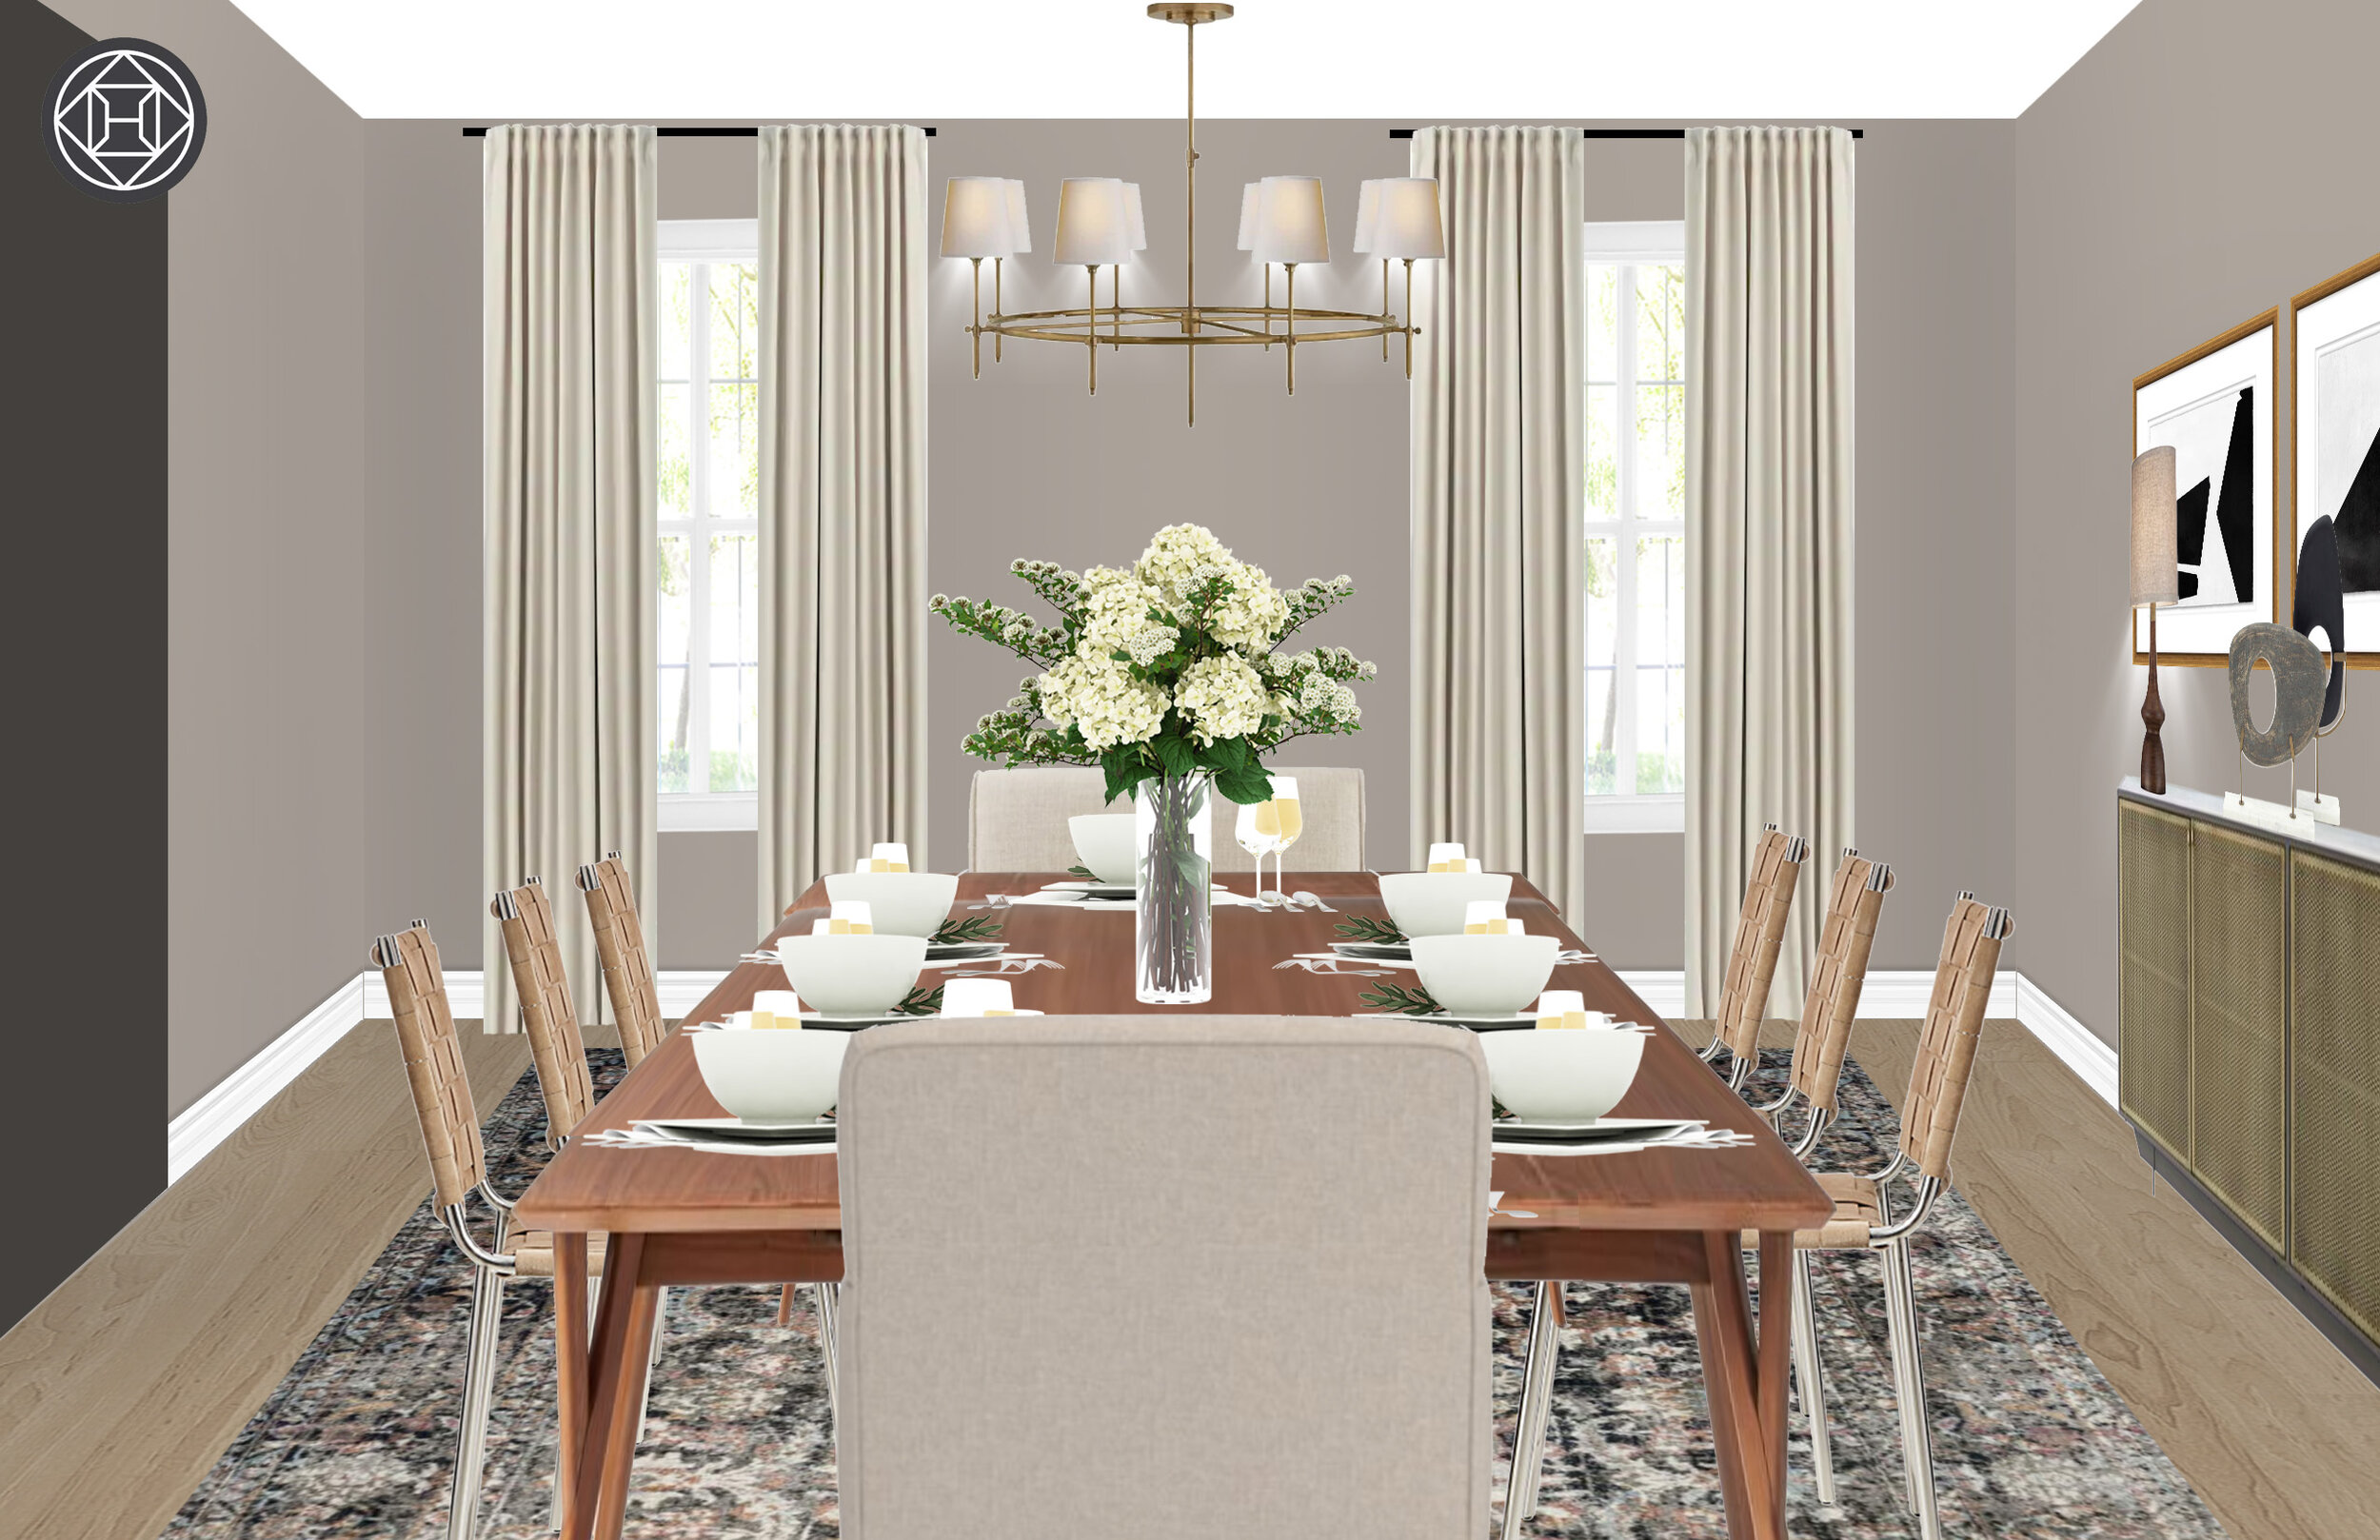 The Inspired Abode - E-Design Services - Formal Dining Room in Houston, Texas